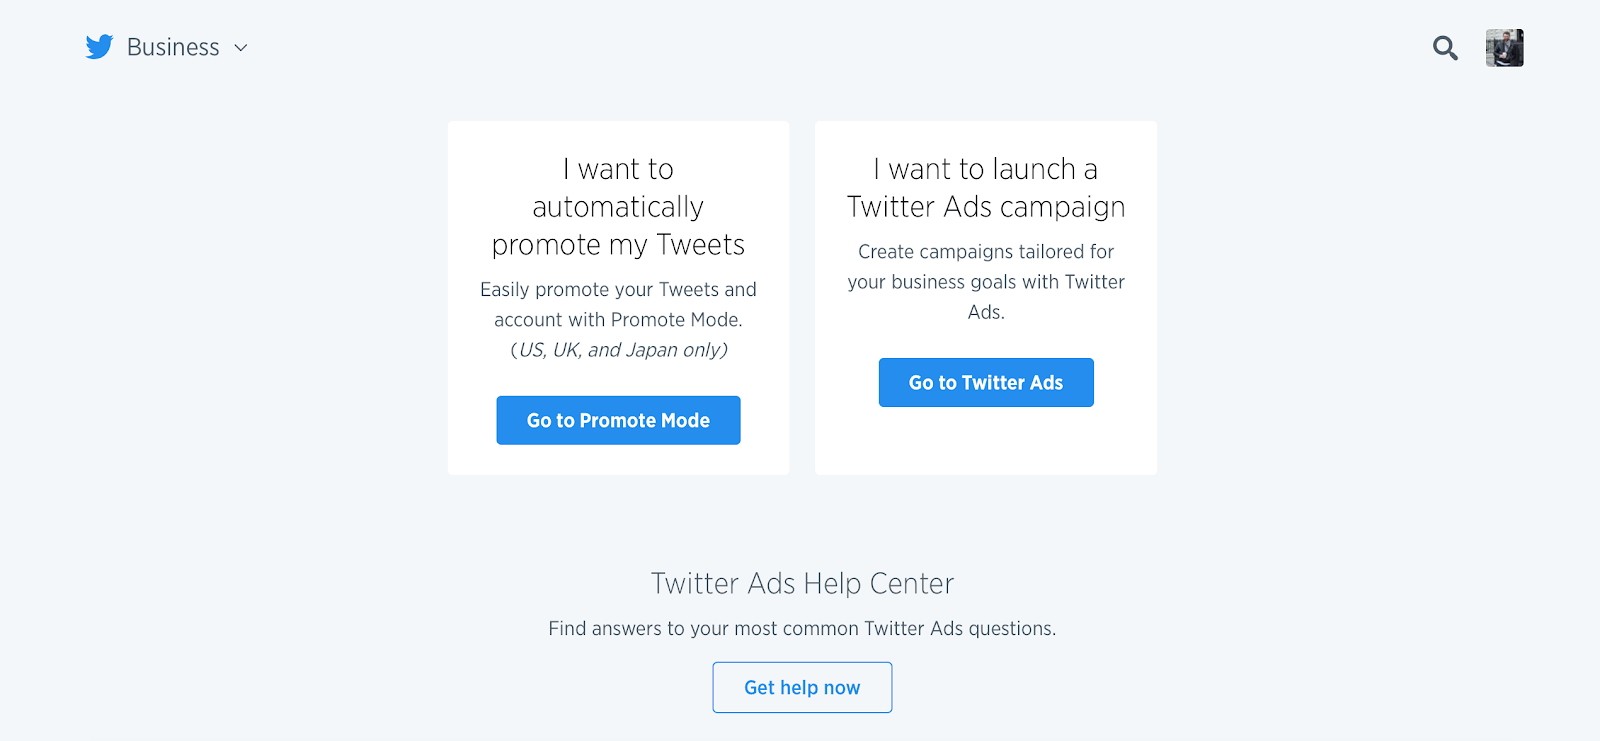 Do Twitter Ads Really Work - Or Should You Focus on Other